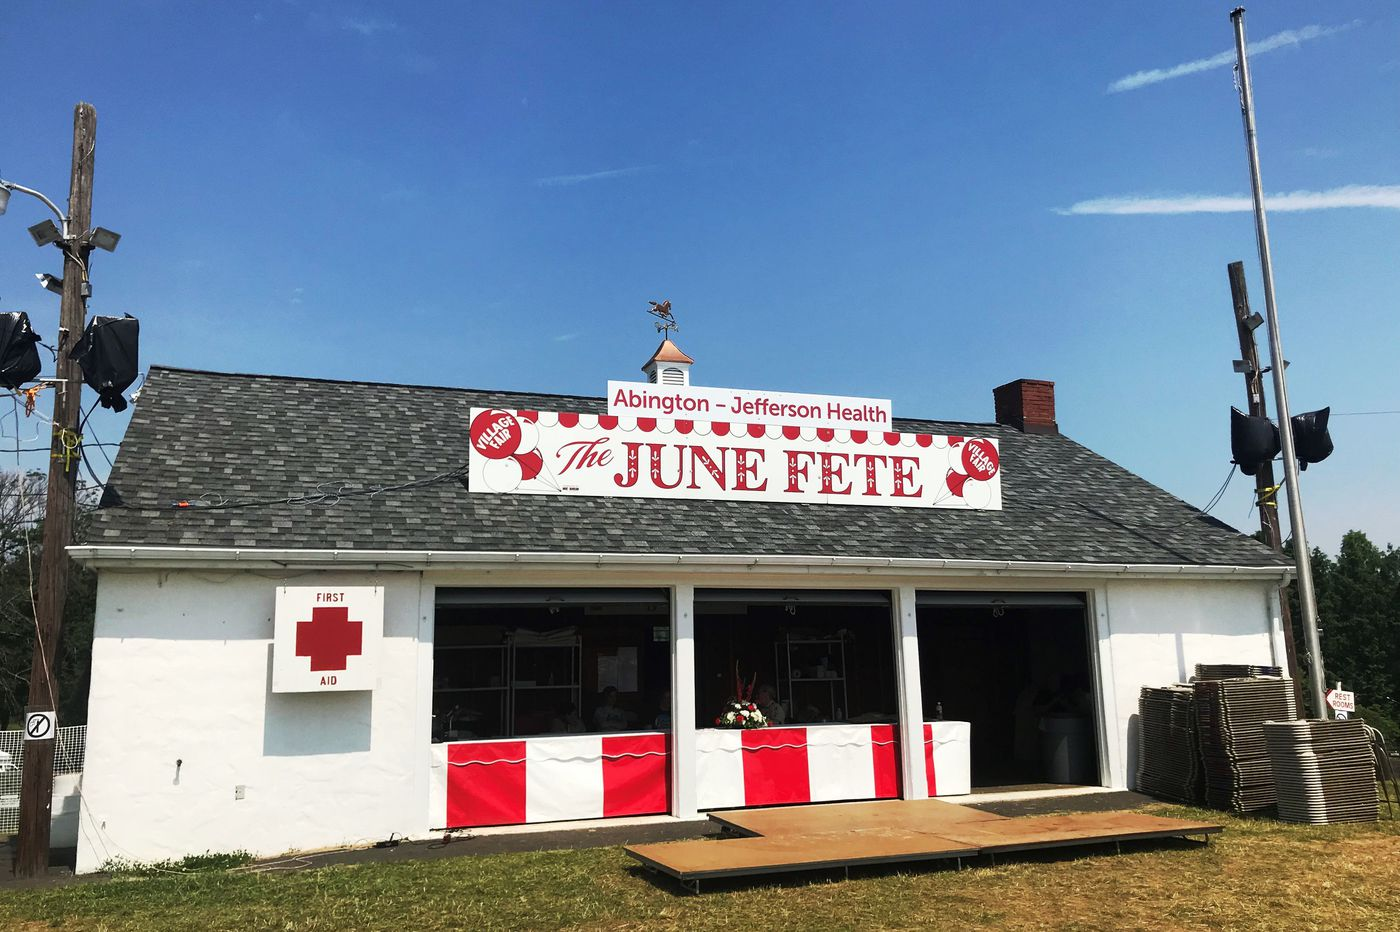 Huntingdon Valley's June Fete: Rides, funnel cake, and 100-plus years of history